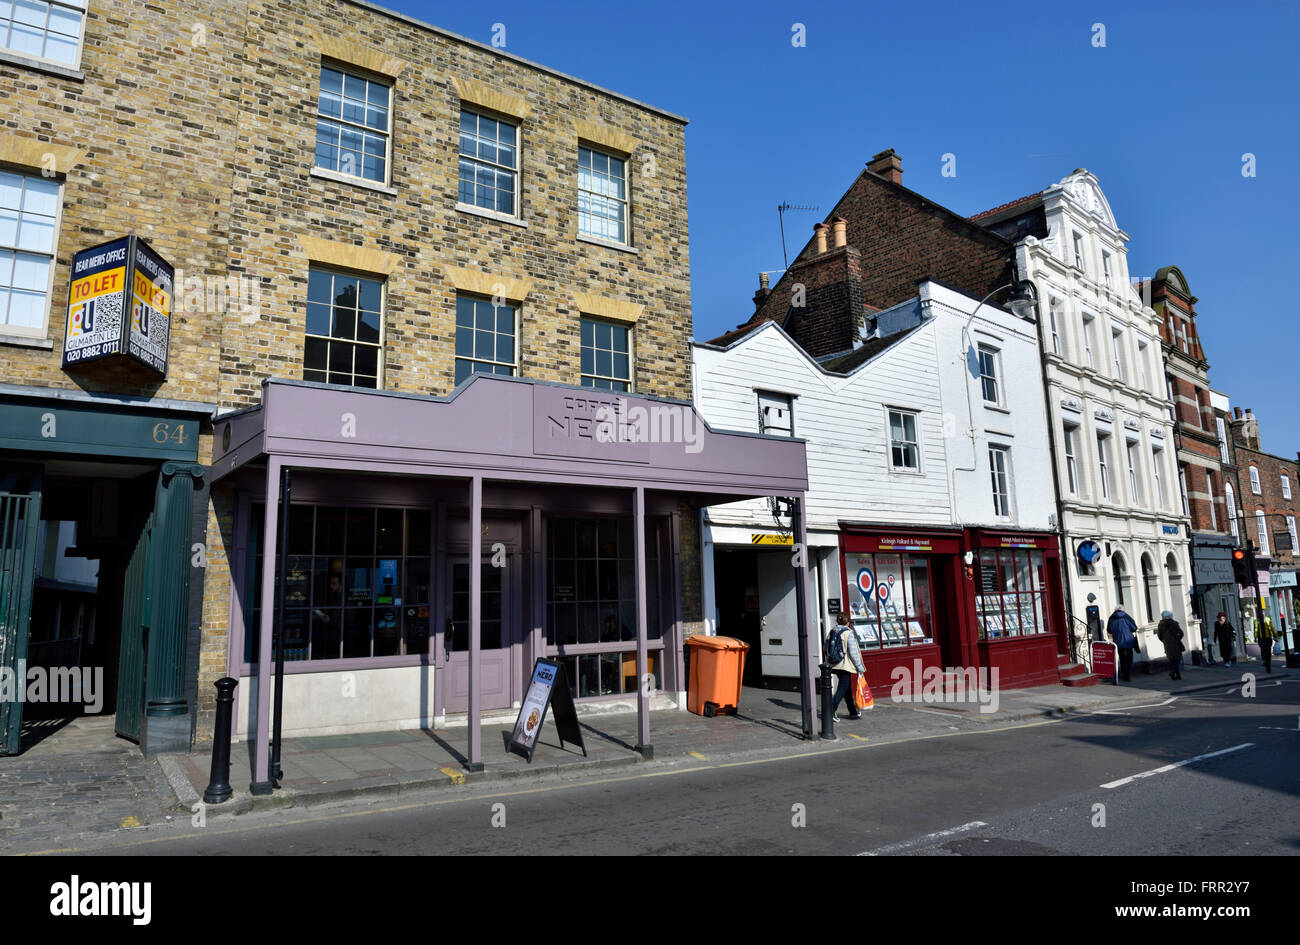 Highgate Village with Caffe Nero in foreground London England Britain UK Stock Photo